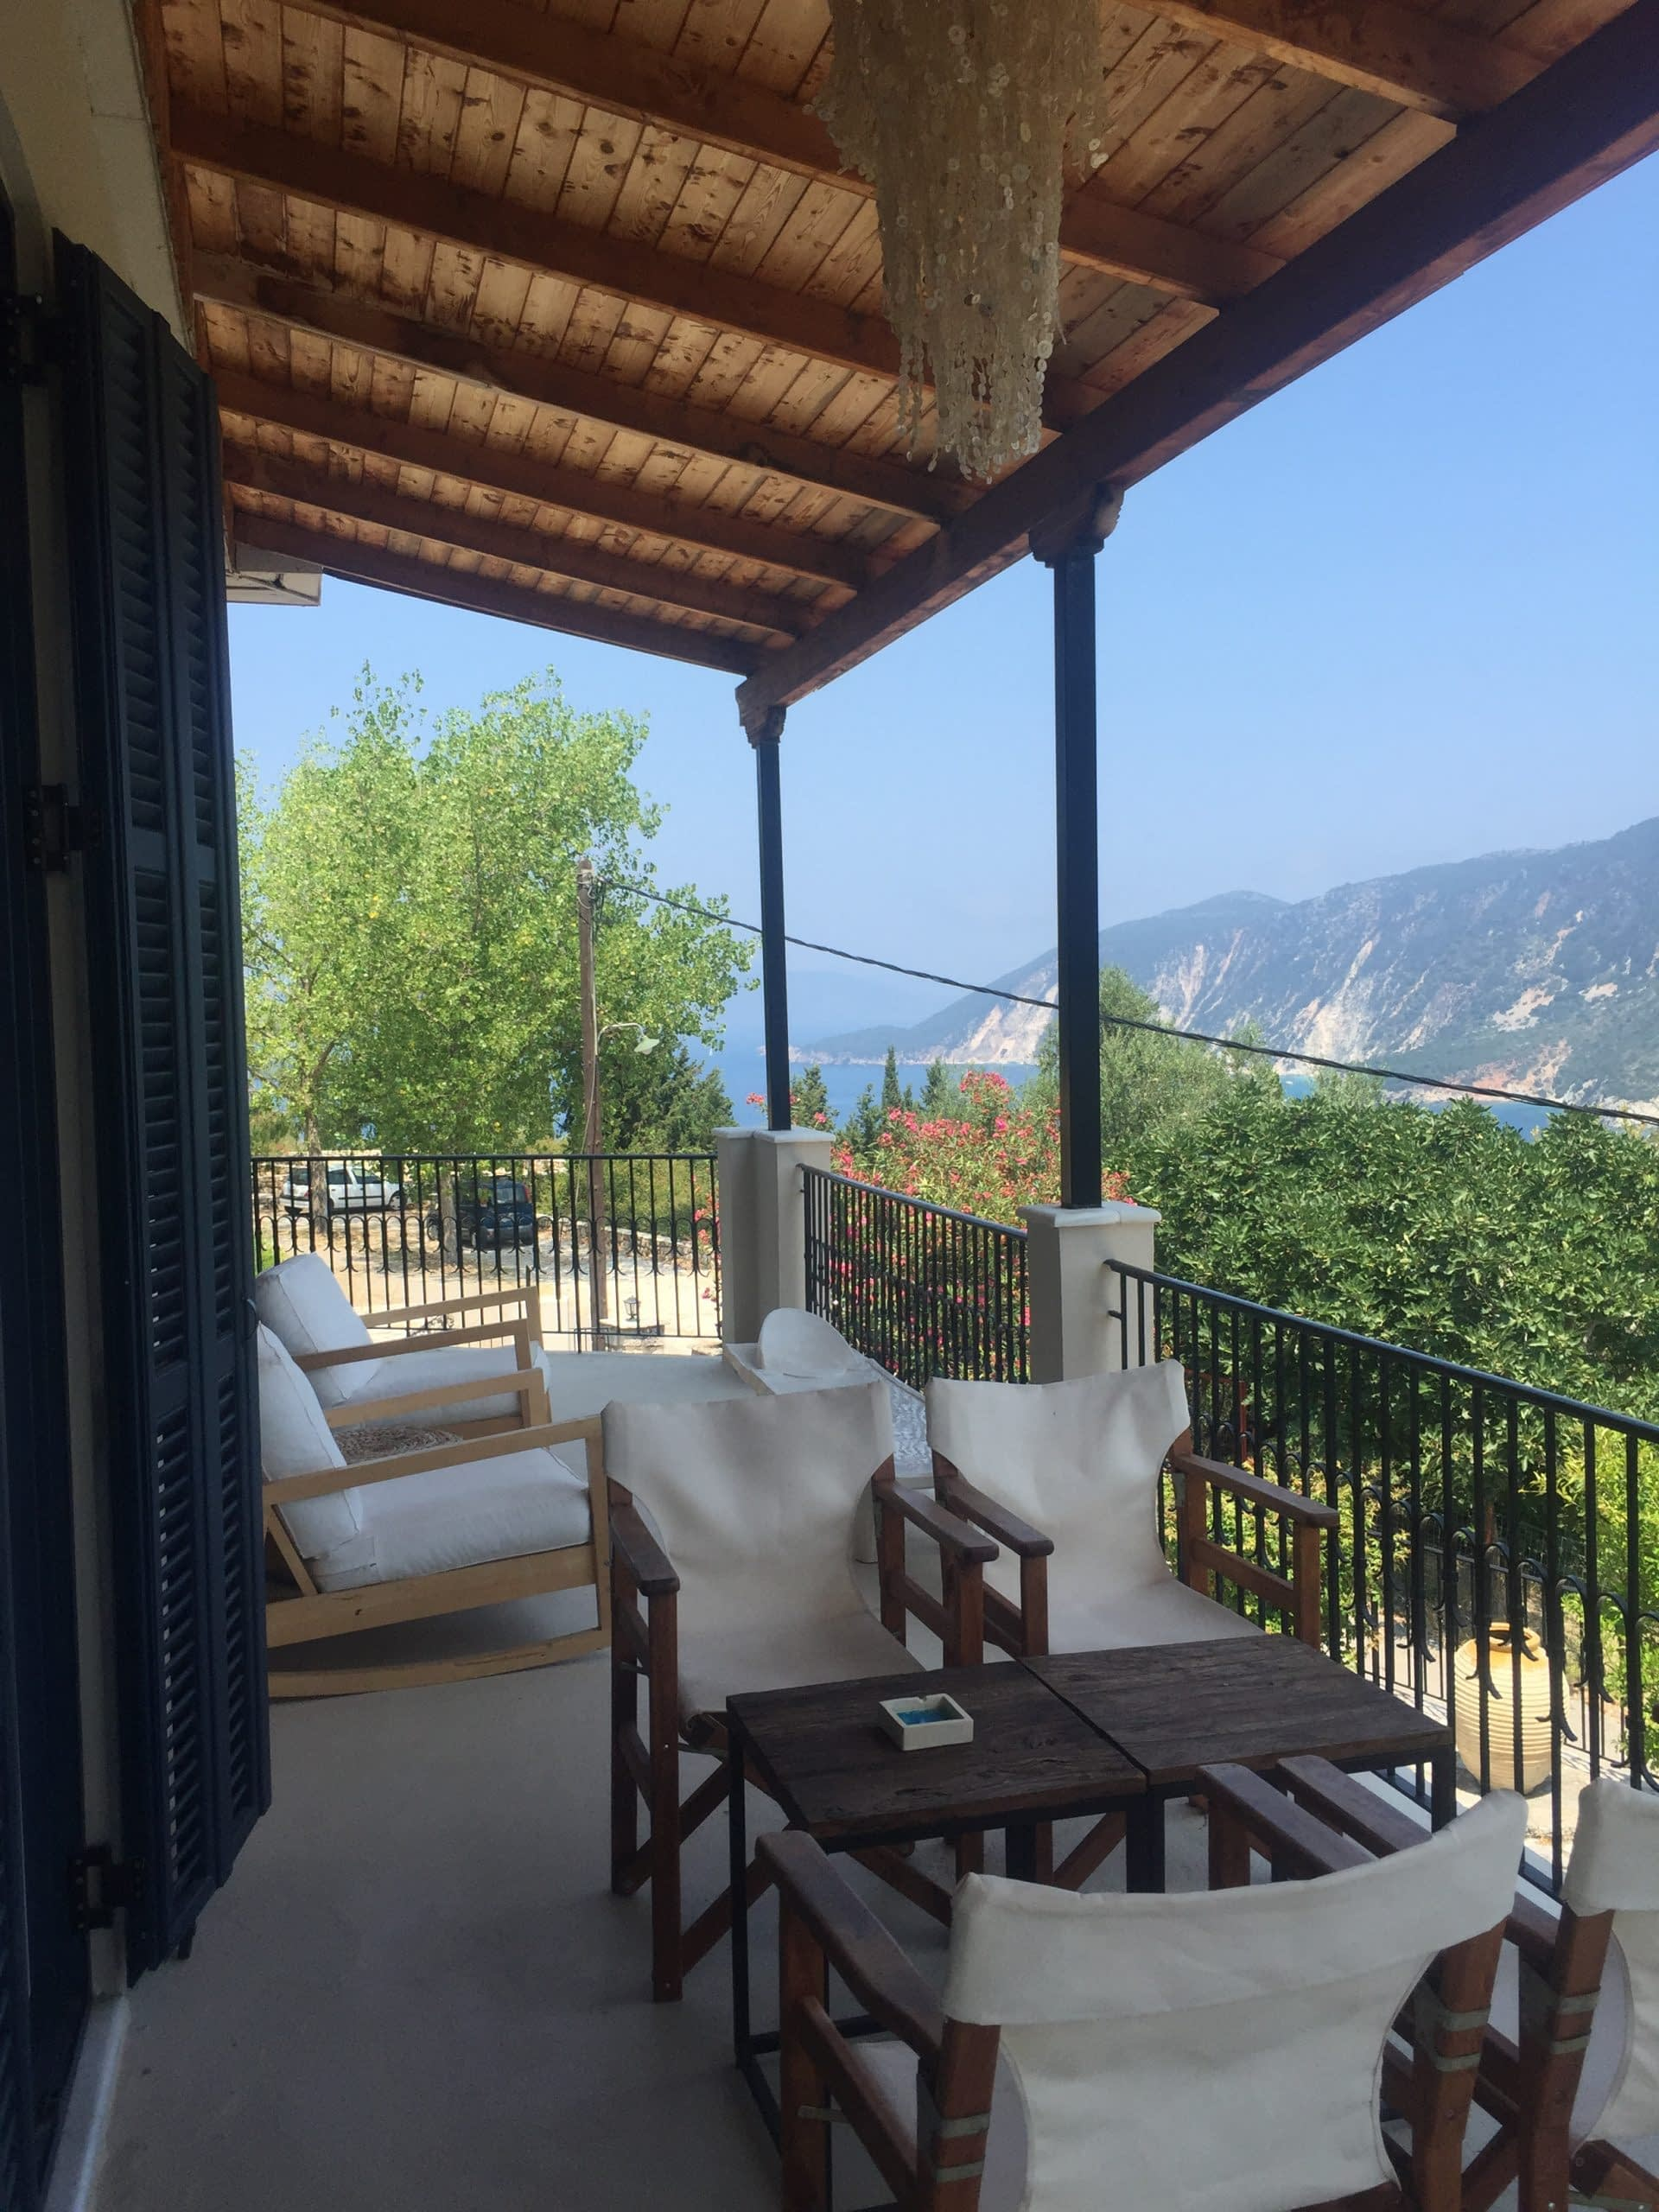 Balcony with view of house for rent Ithaca Greece, Kolleri